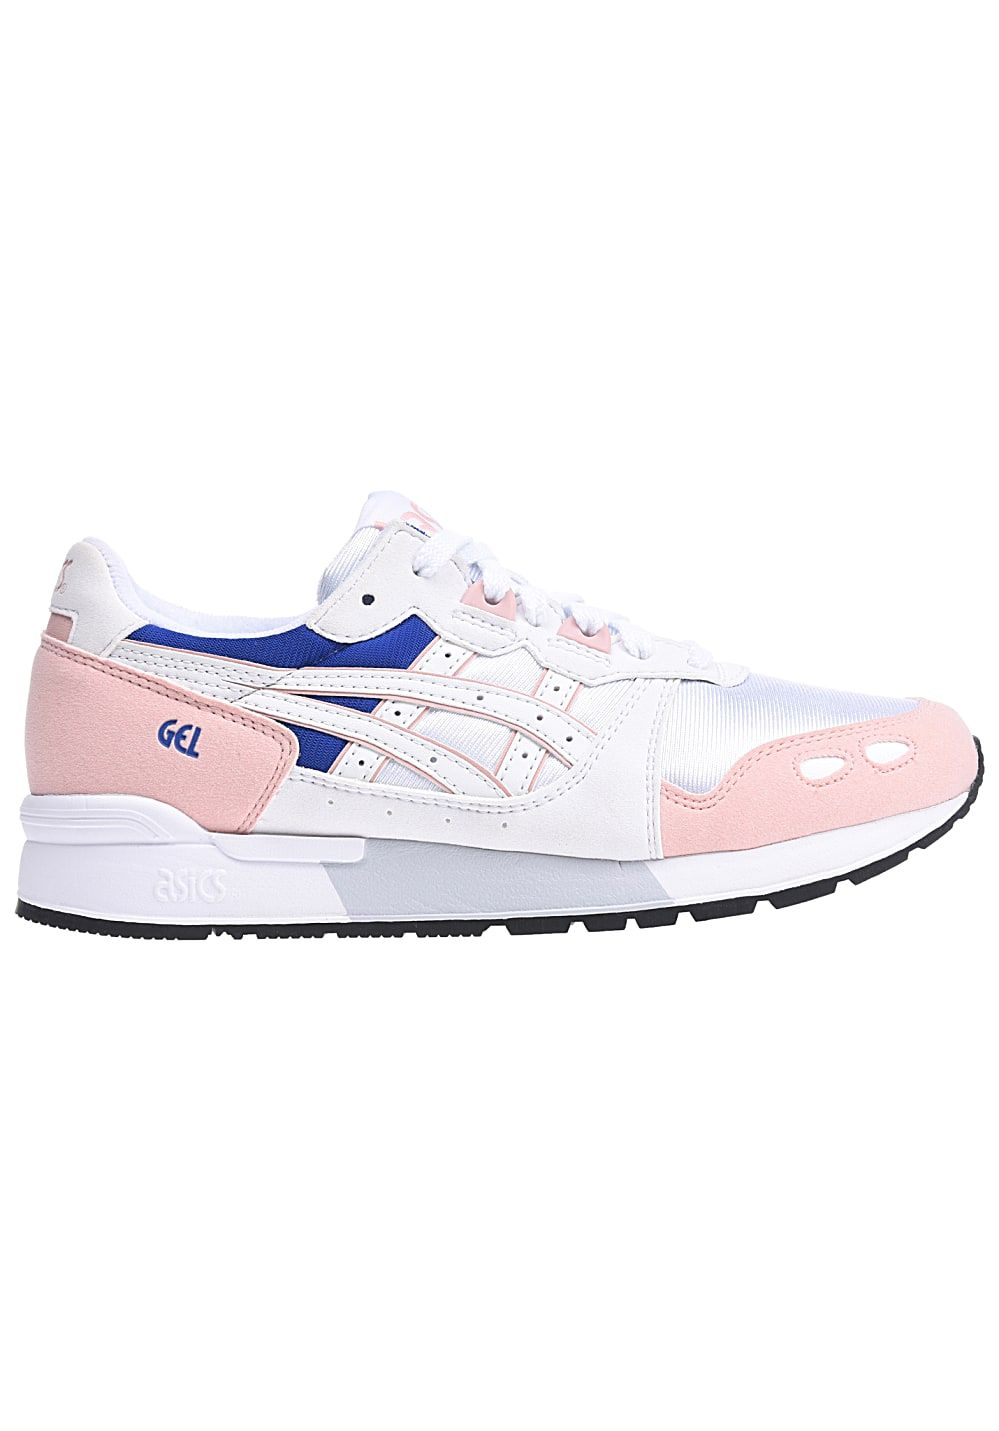 Asics Tiger Gel Lyte Sneaker für Damen Weiß #asics #sneakers #shoes ...